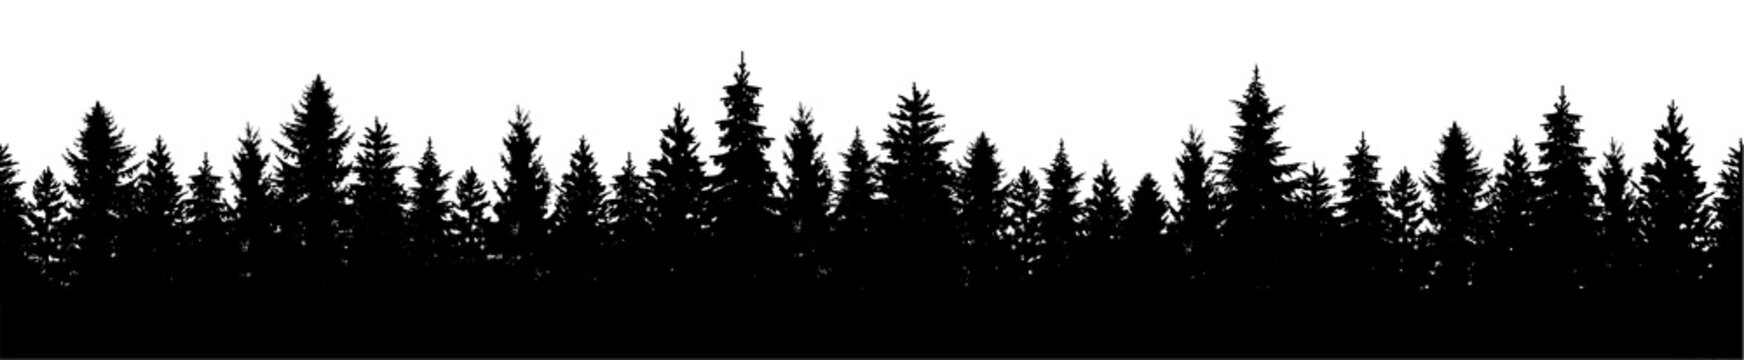 Forest seamless silhouette background. Pine tree. Fir trees landscape. Christmas fir trees silhouette - stock vector.